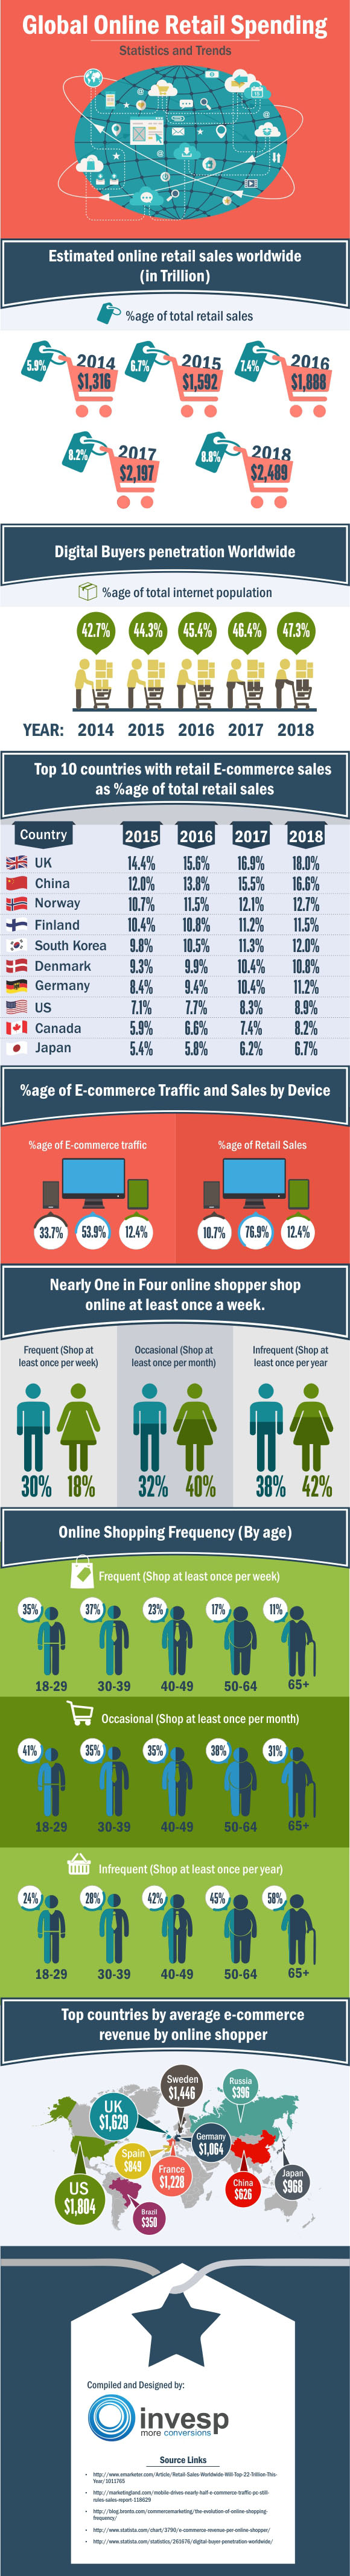 Global online retail spending Statistics and Trends